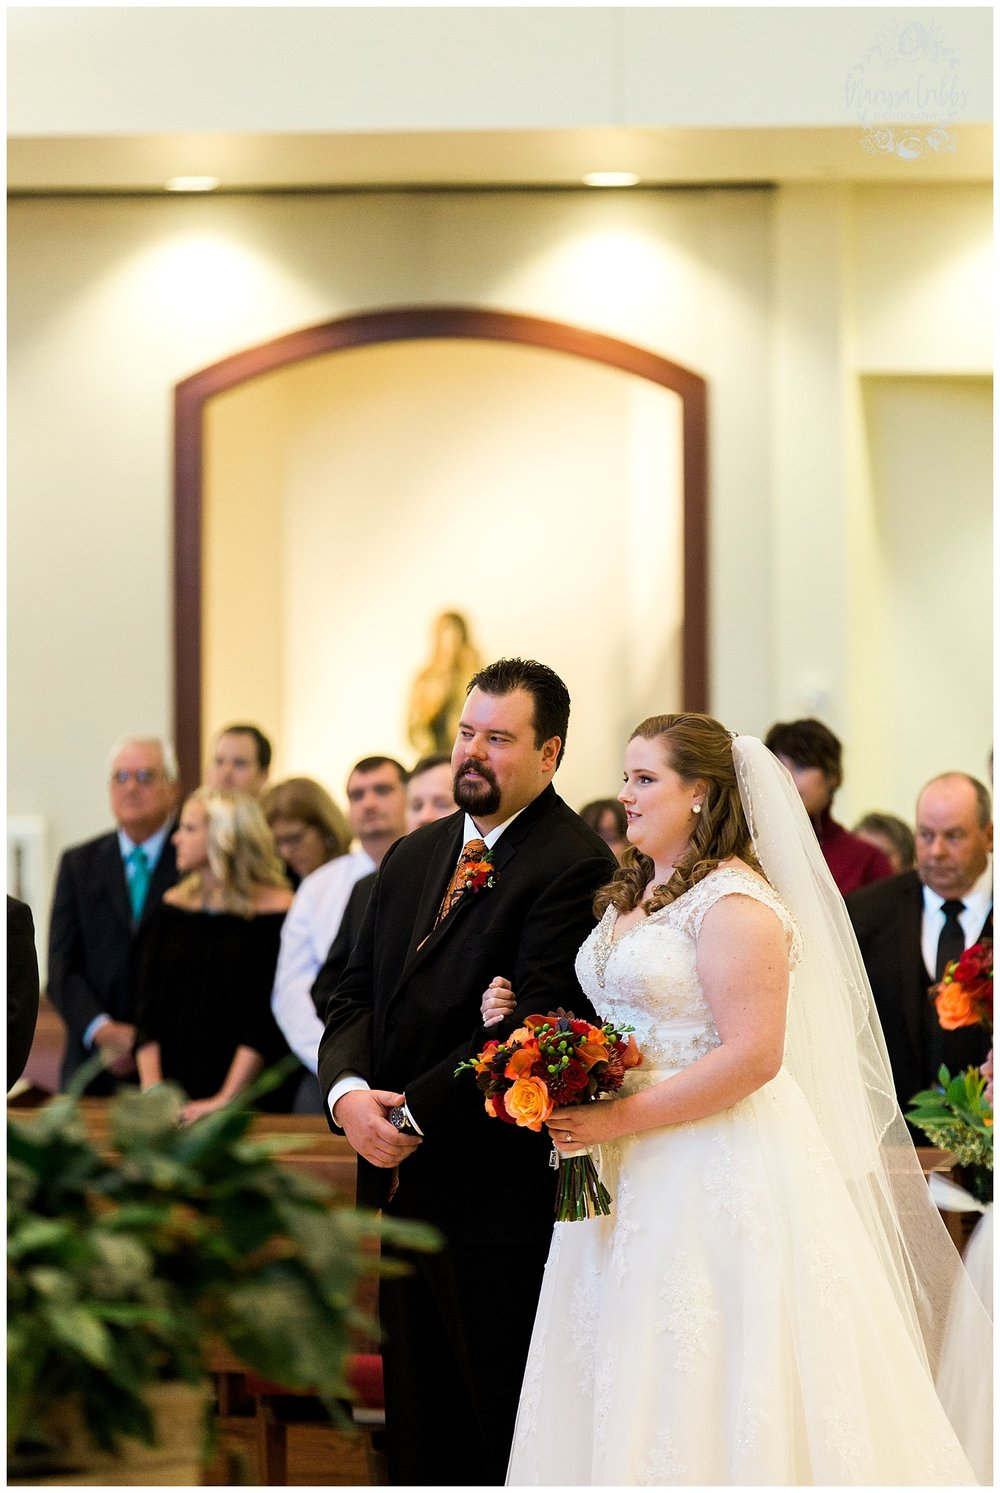 KELLY WEDDING | VENUE AT WILLOW CREEK | MARISSA CRIBBS PHOTOGRAPHY_3701.jpg